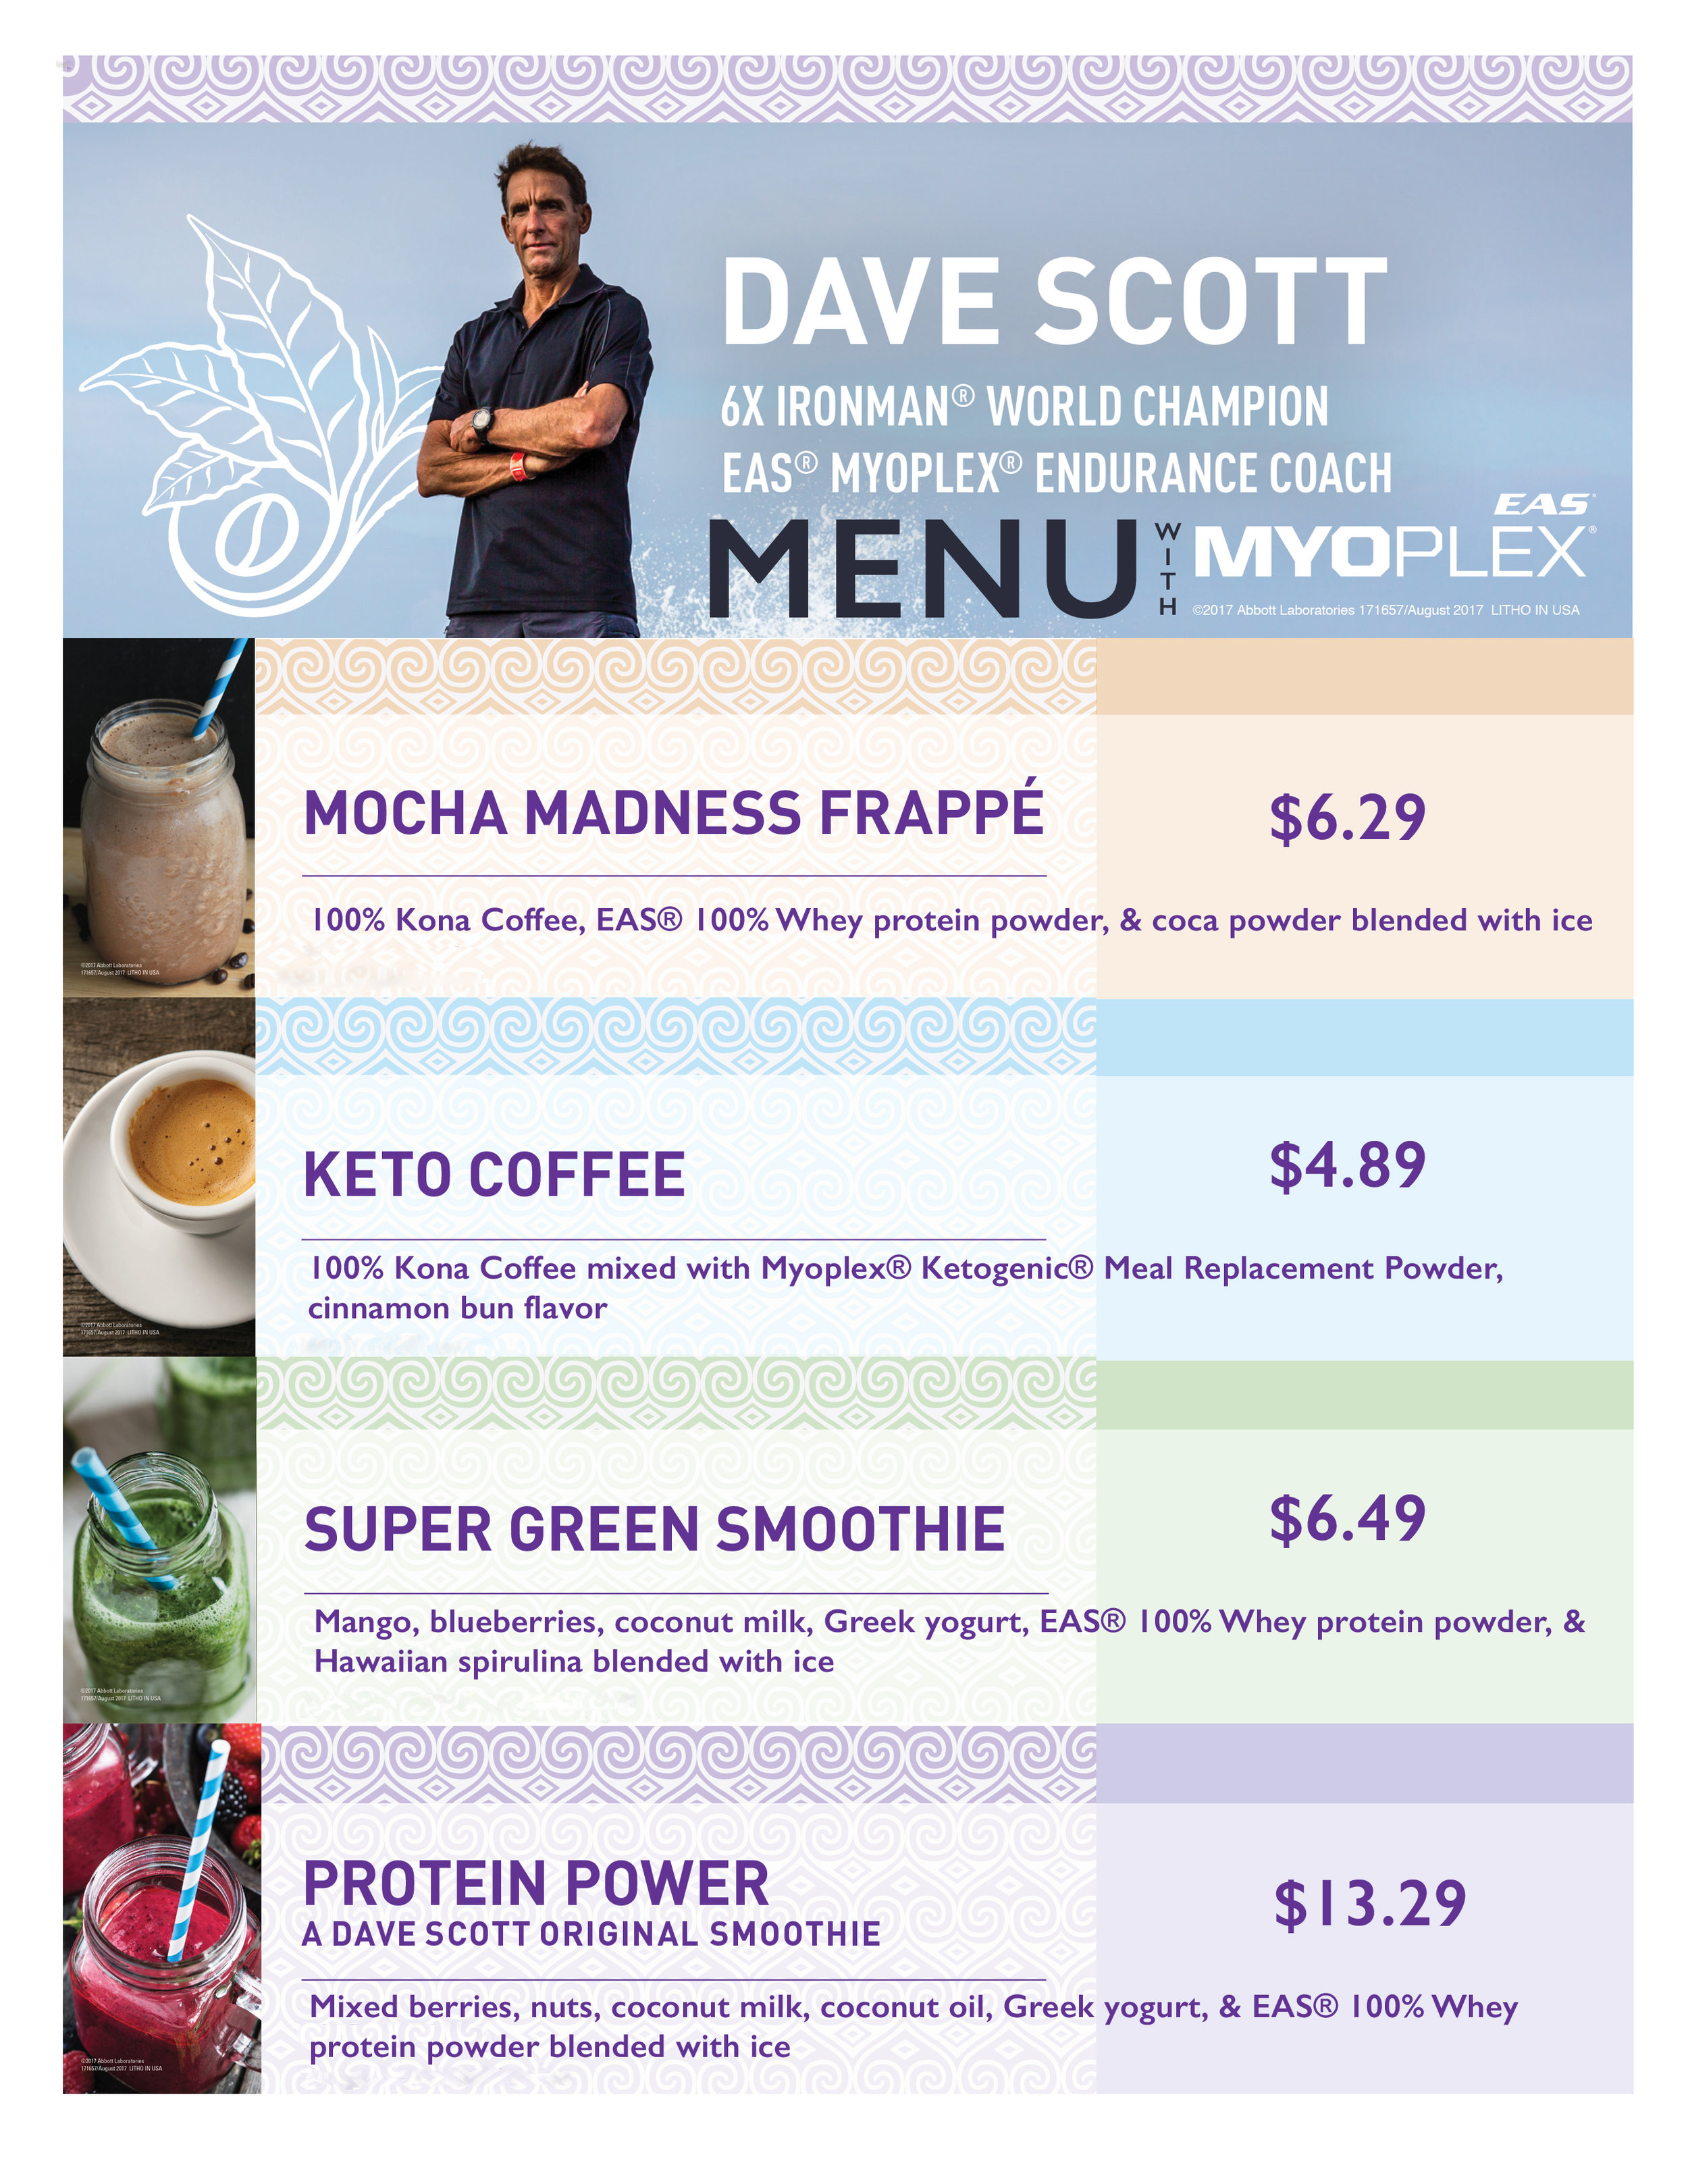 Dave Scott Smoothie